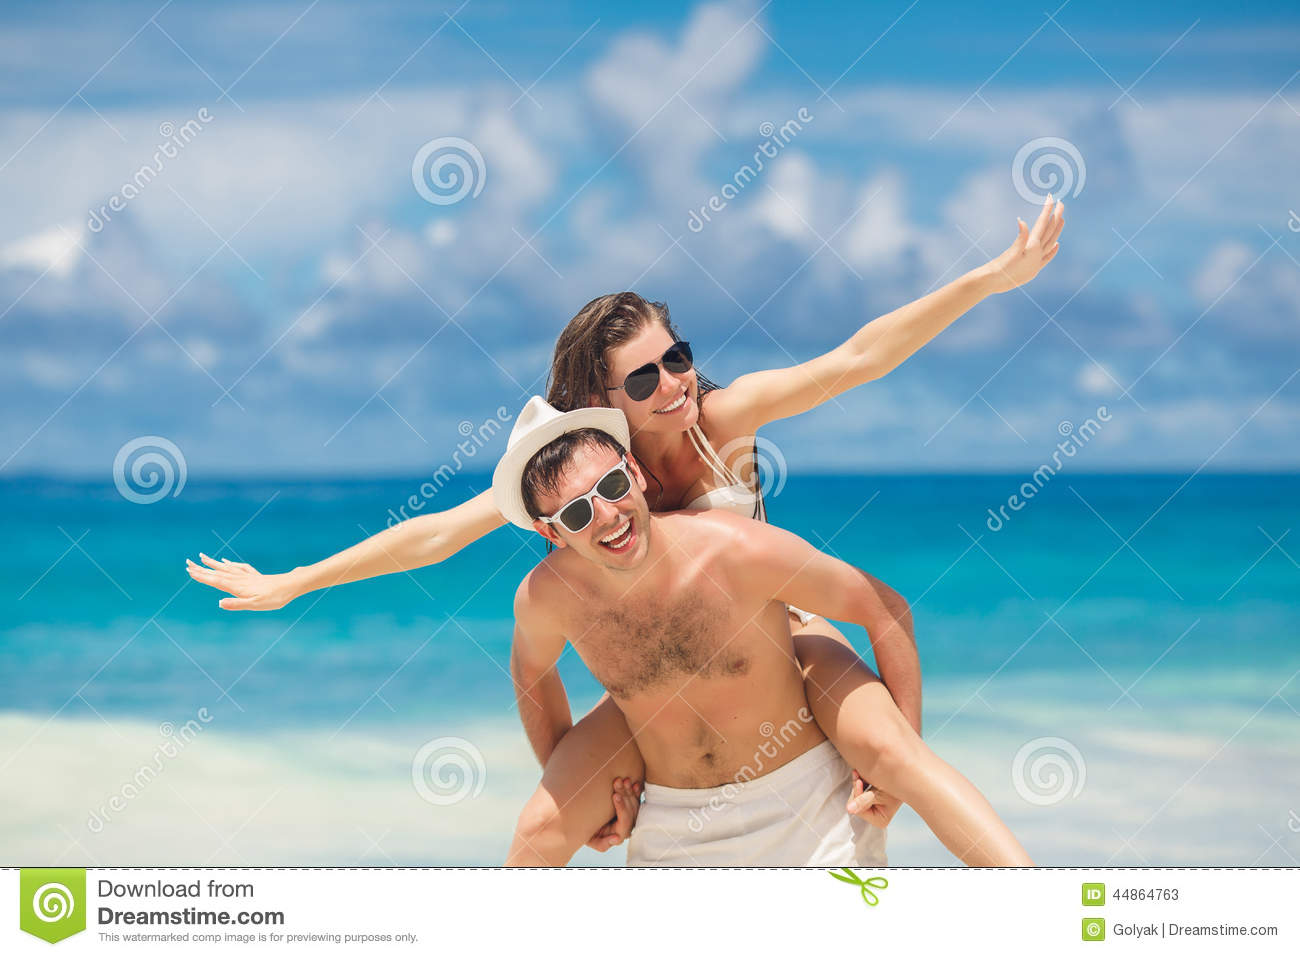 Couple having fun on the beach of a tropical ocean.